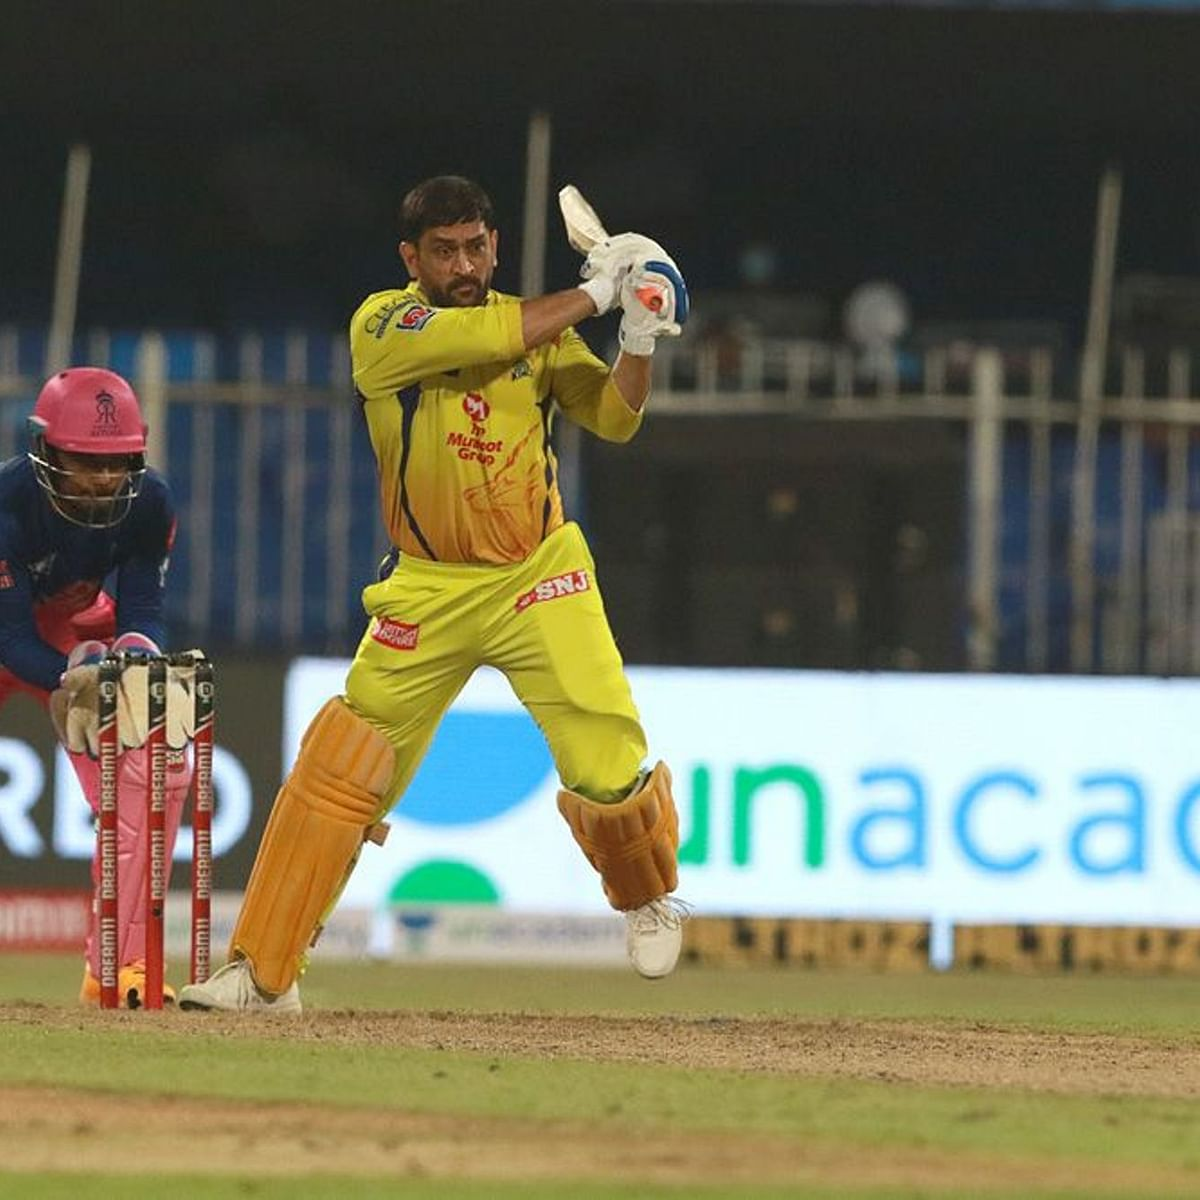 IPL 2020: MS Dhoni completes 4,000 runs for Chennai Super Kings